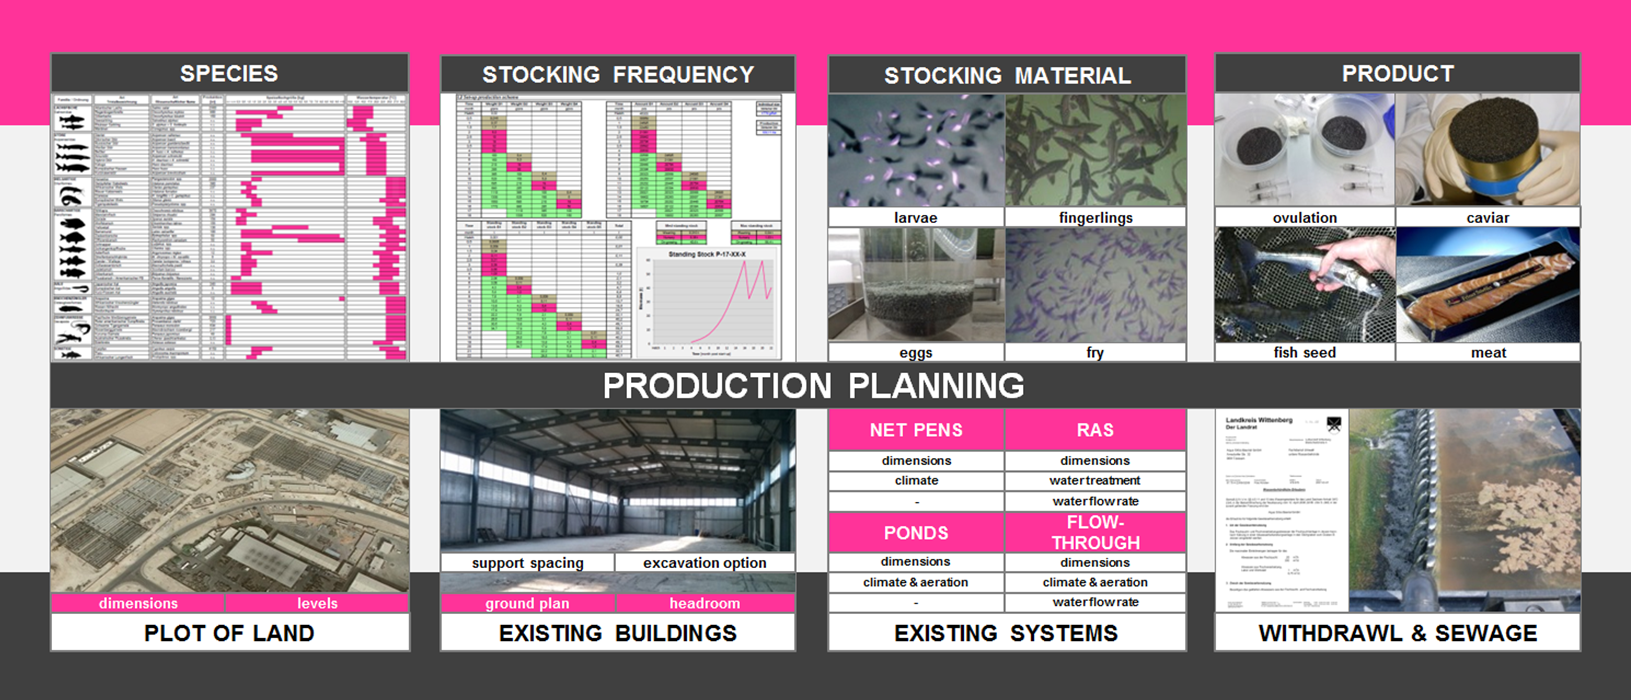 REX-M production planning aquaculture RAS species product building plot of land withdrawl well sewage discharge requirements water use stock stocking